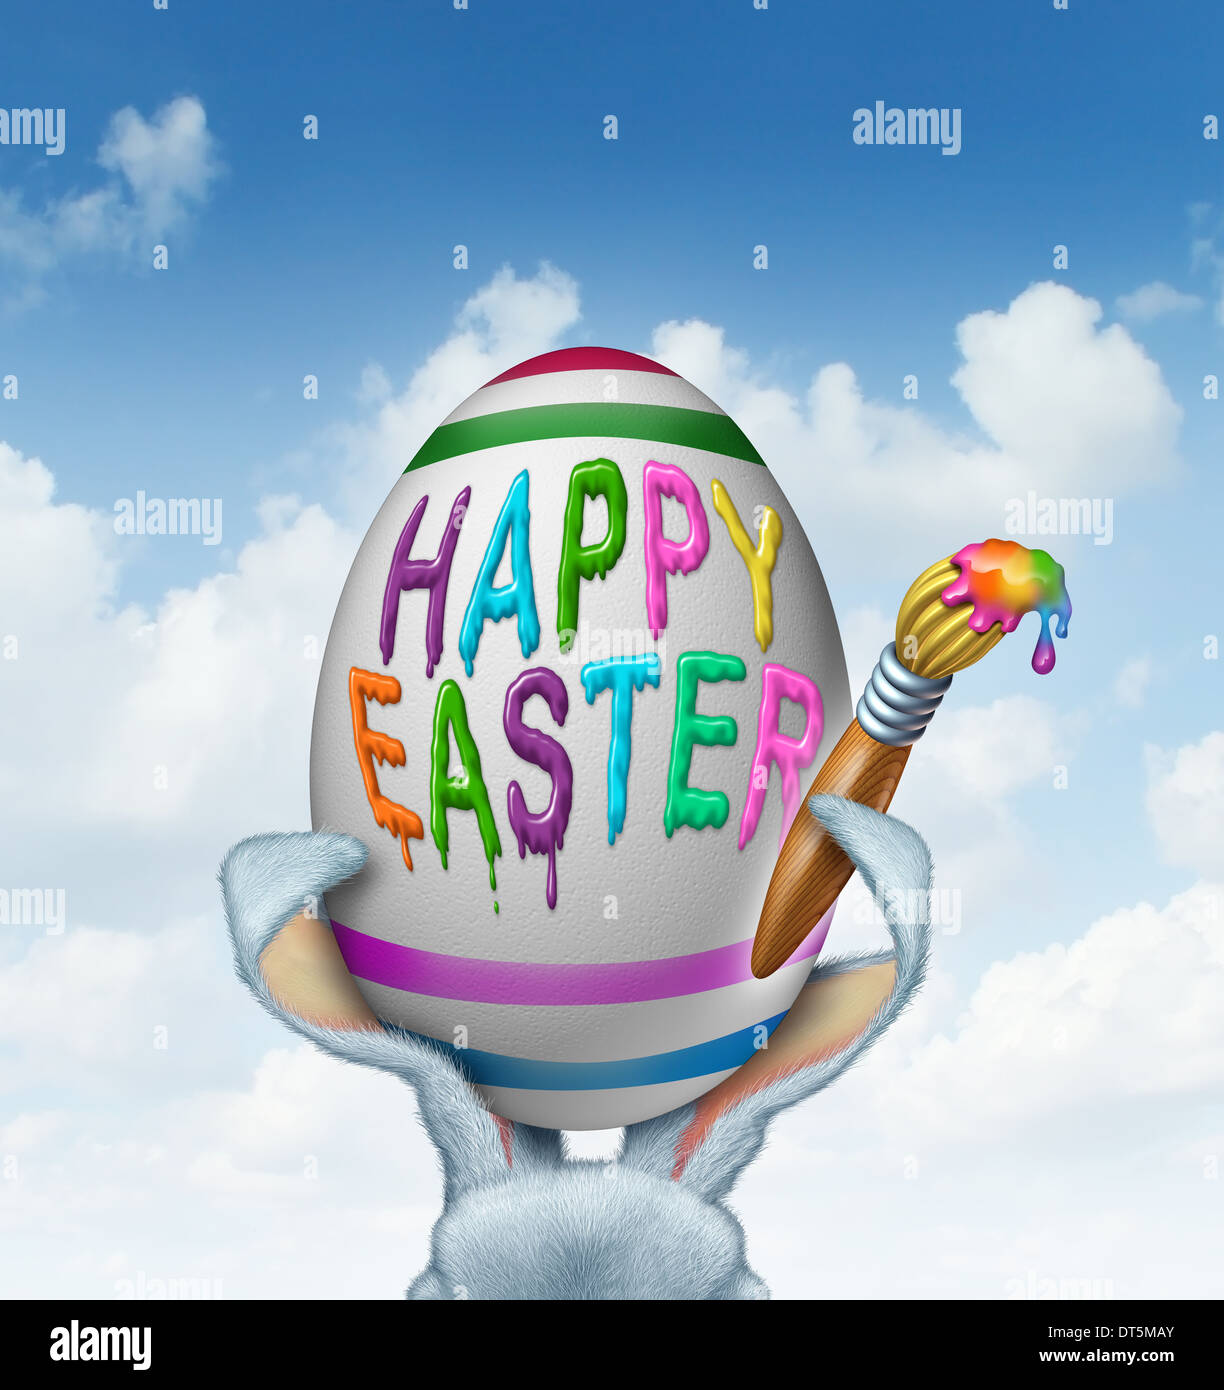 Happy easter greeting painted on a giant white egg with a paint happy easter greeting painted on a giant white egg with a paint brush being held by rabbit ears with detailed textured realistic fur as a fun spring symbol m4hsunfo